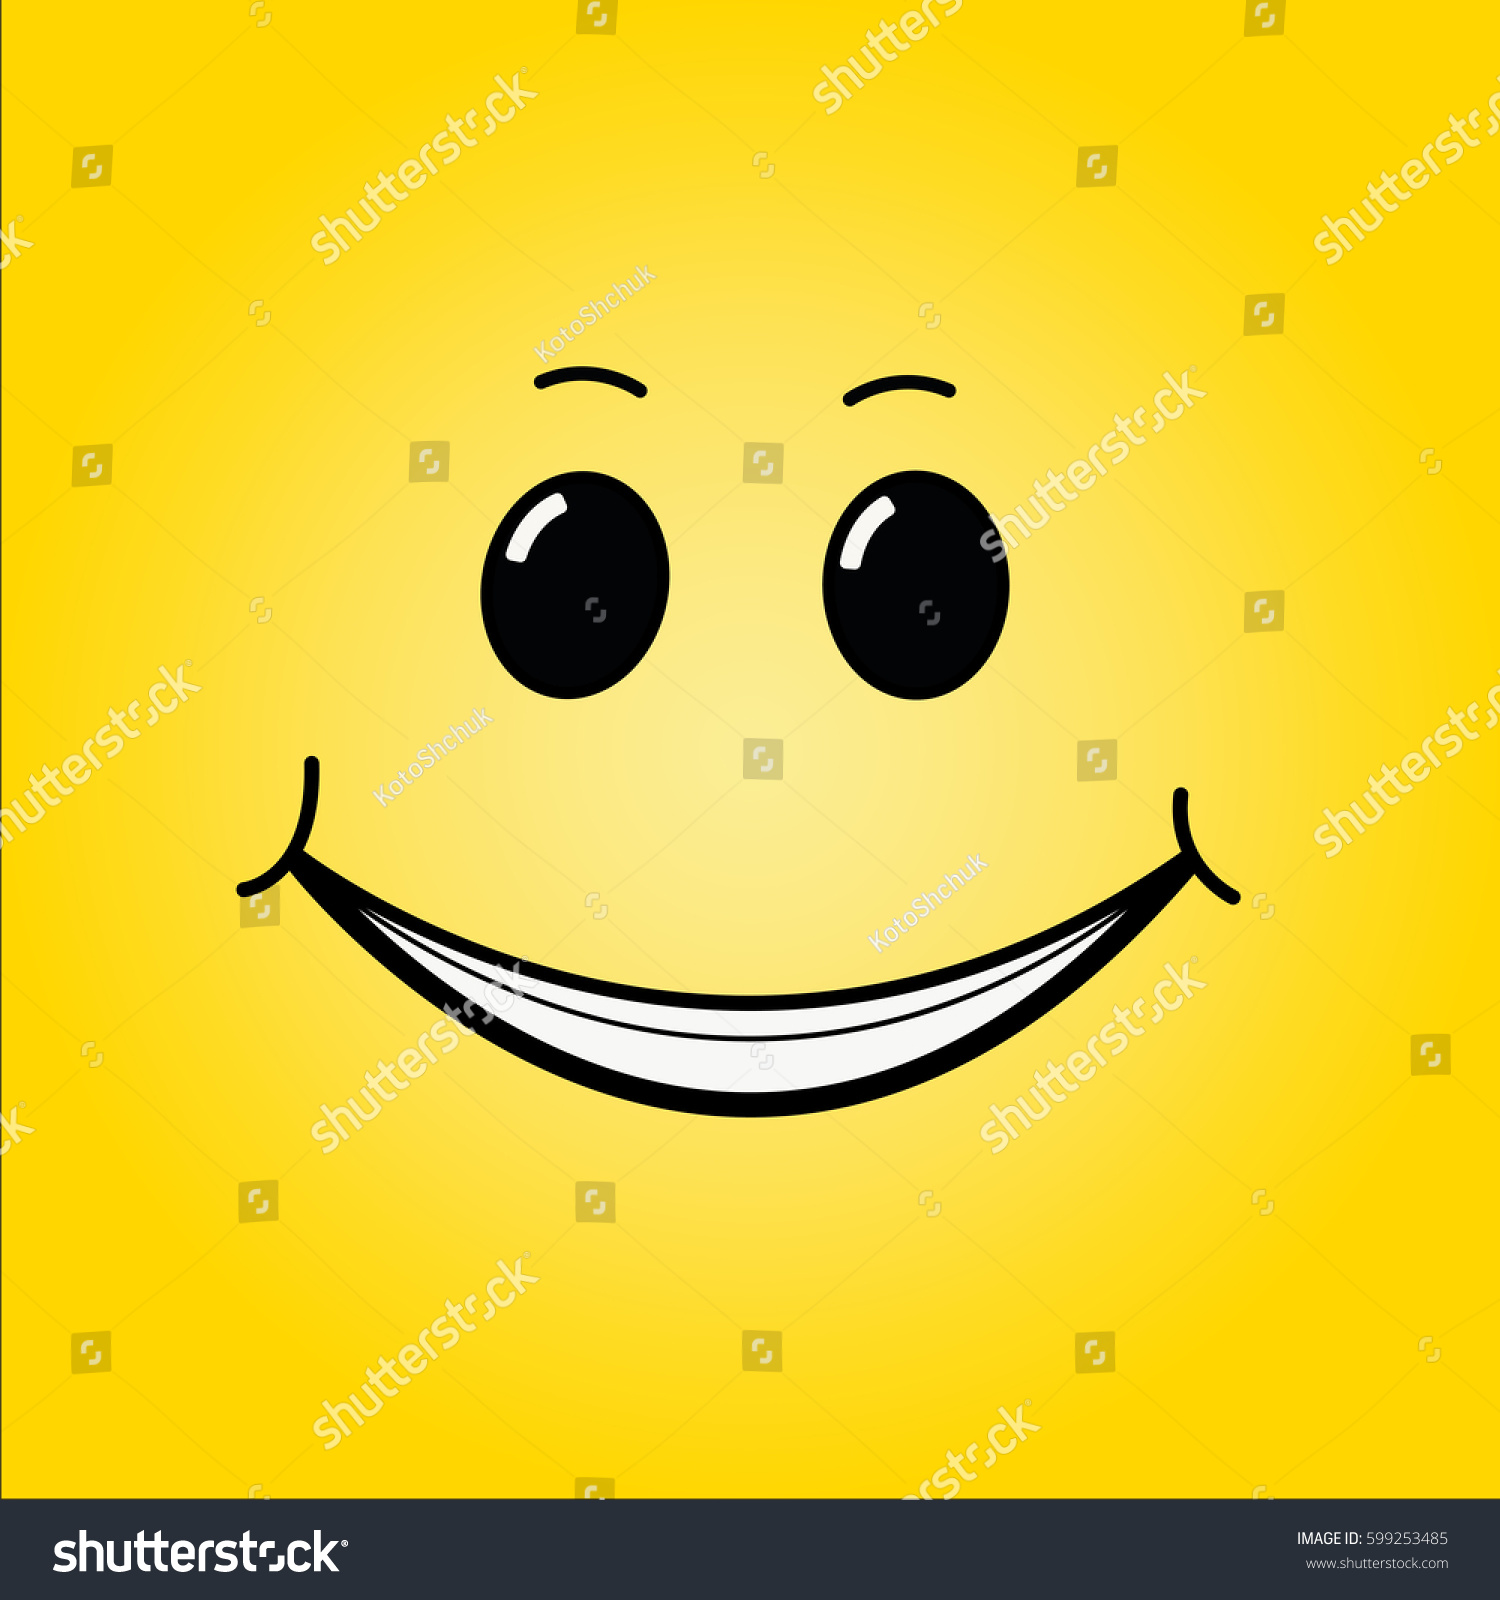 smile on yellow background happy mood stock vector   - smile on yellow background happy mood stock vector   shutterstock